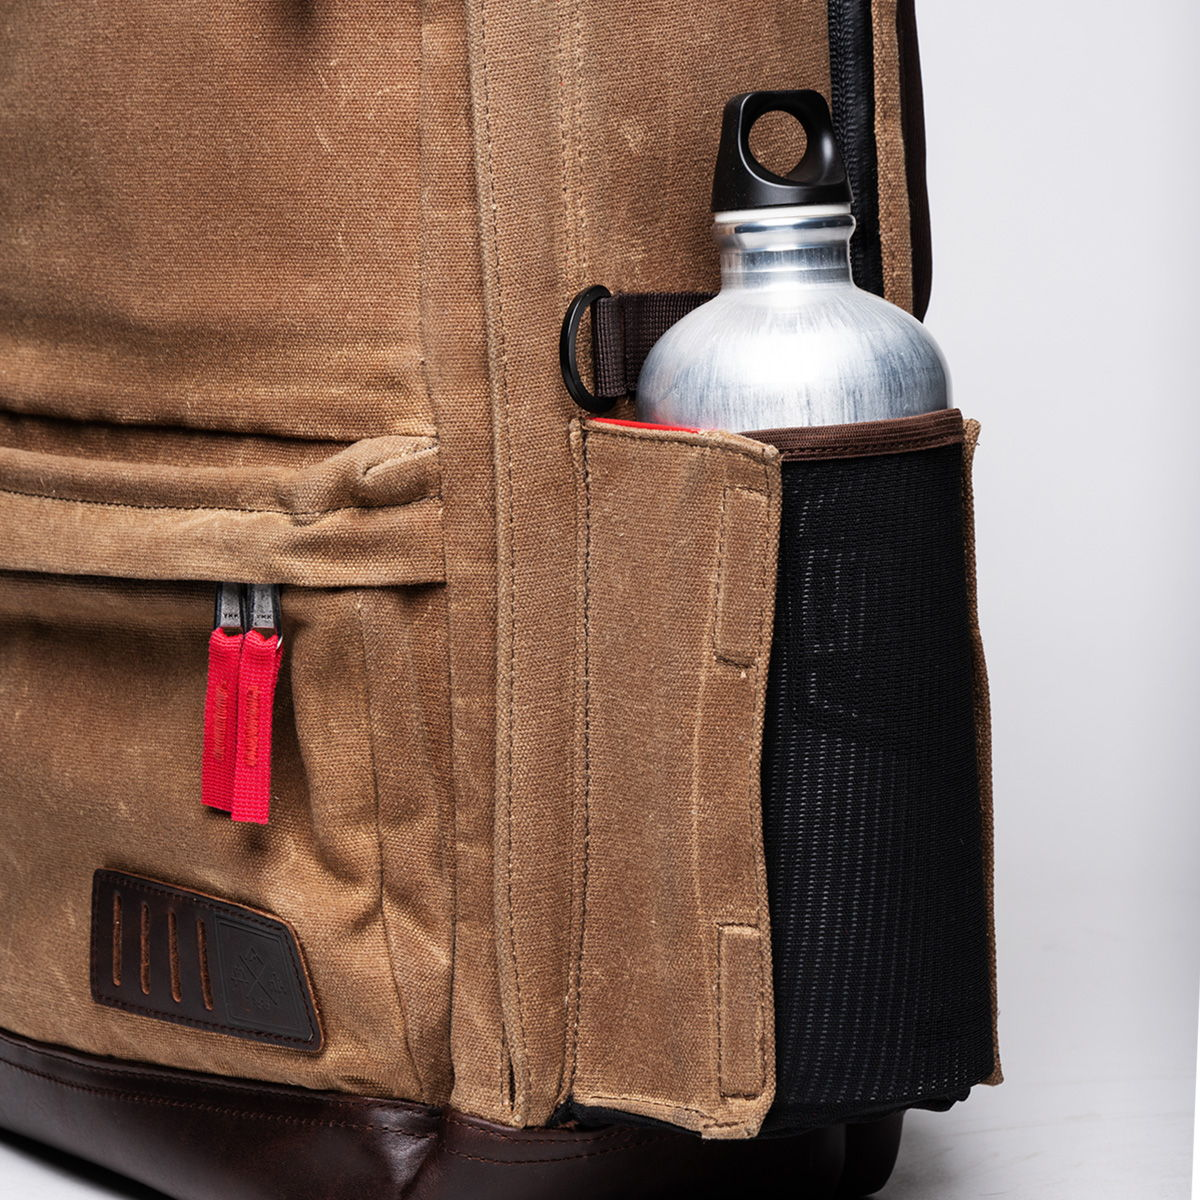 Magnetic bottle pocket